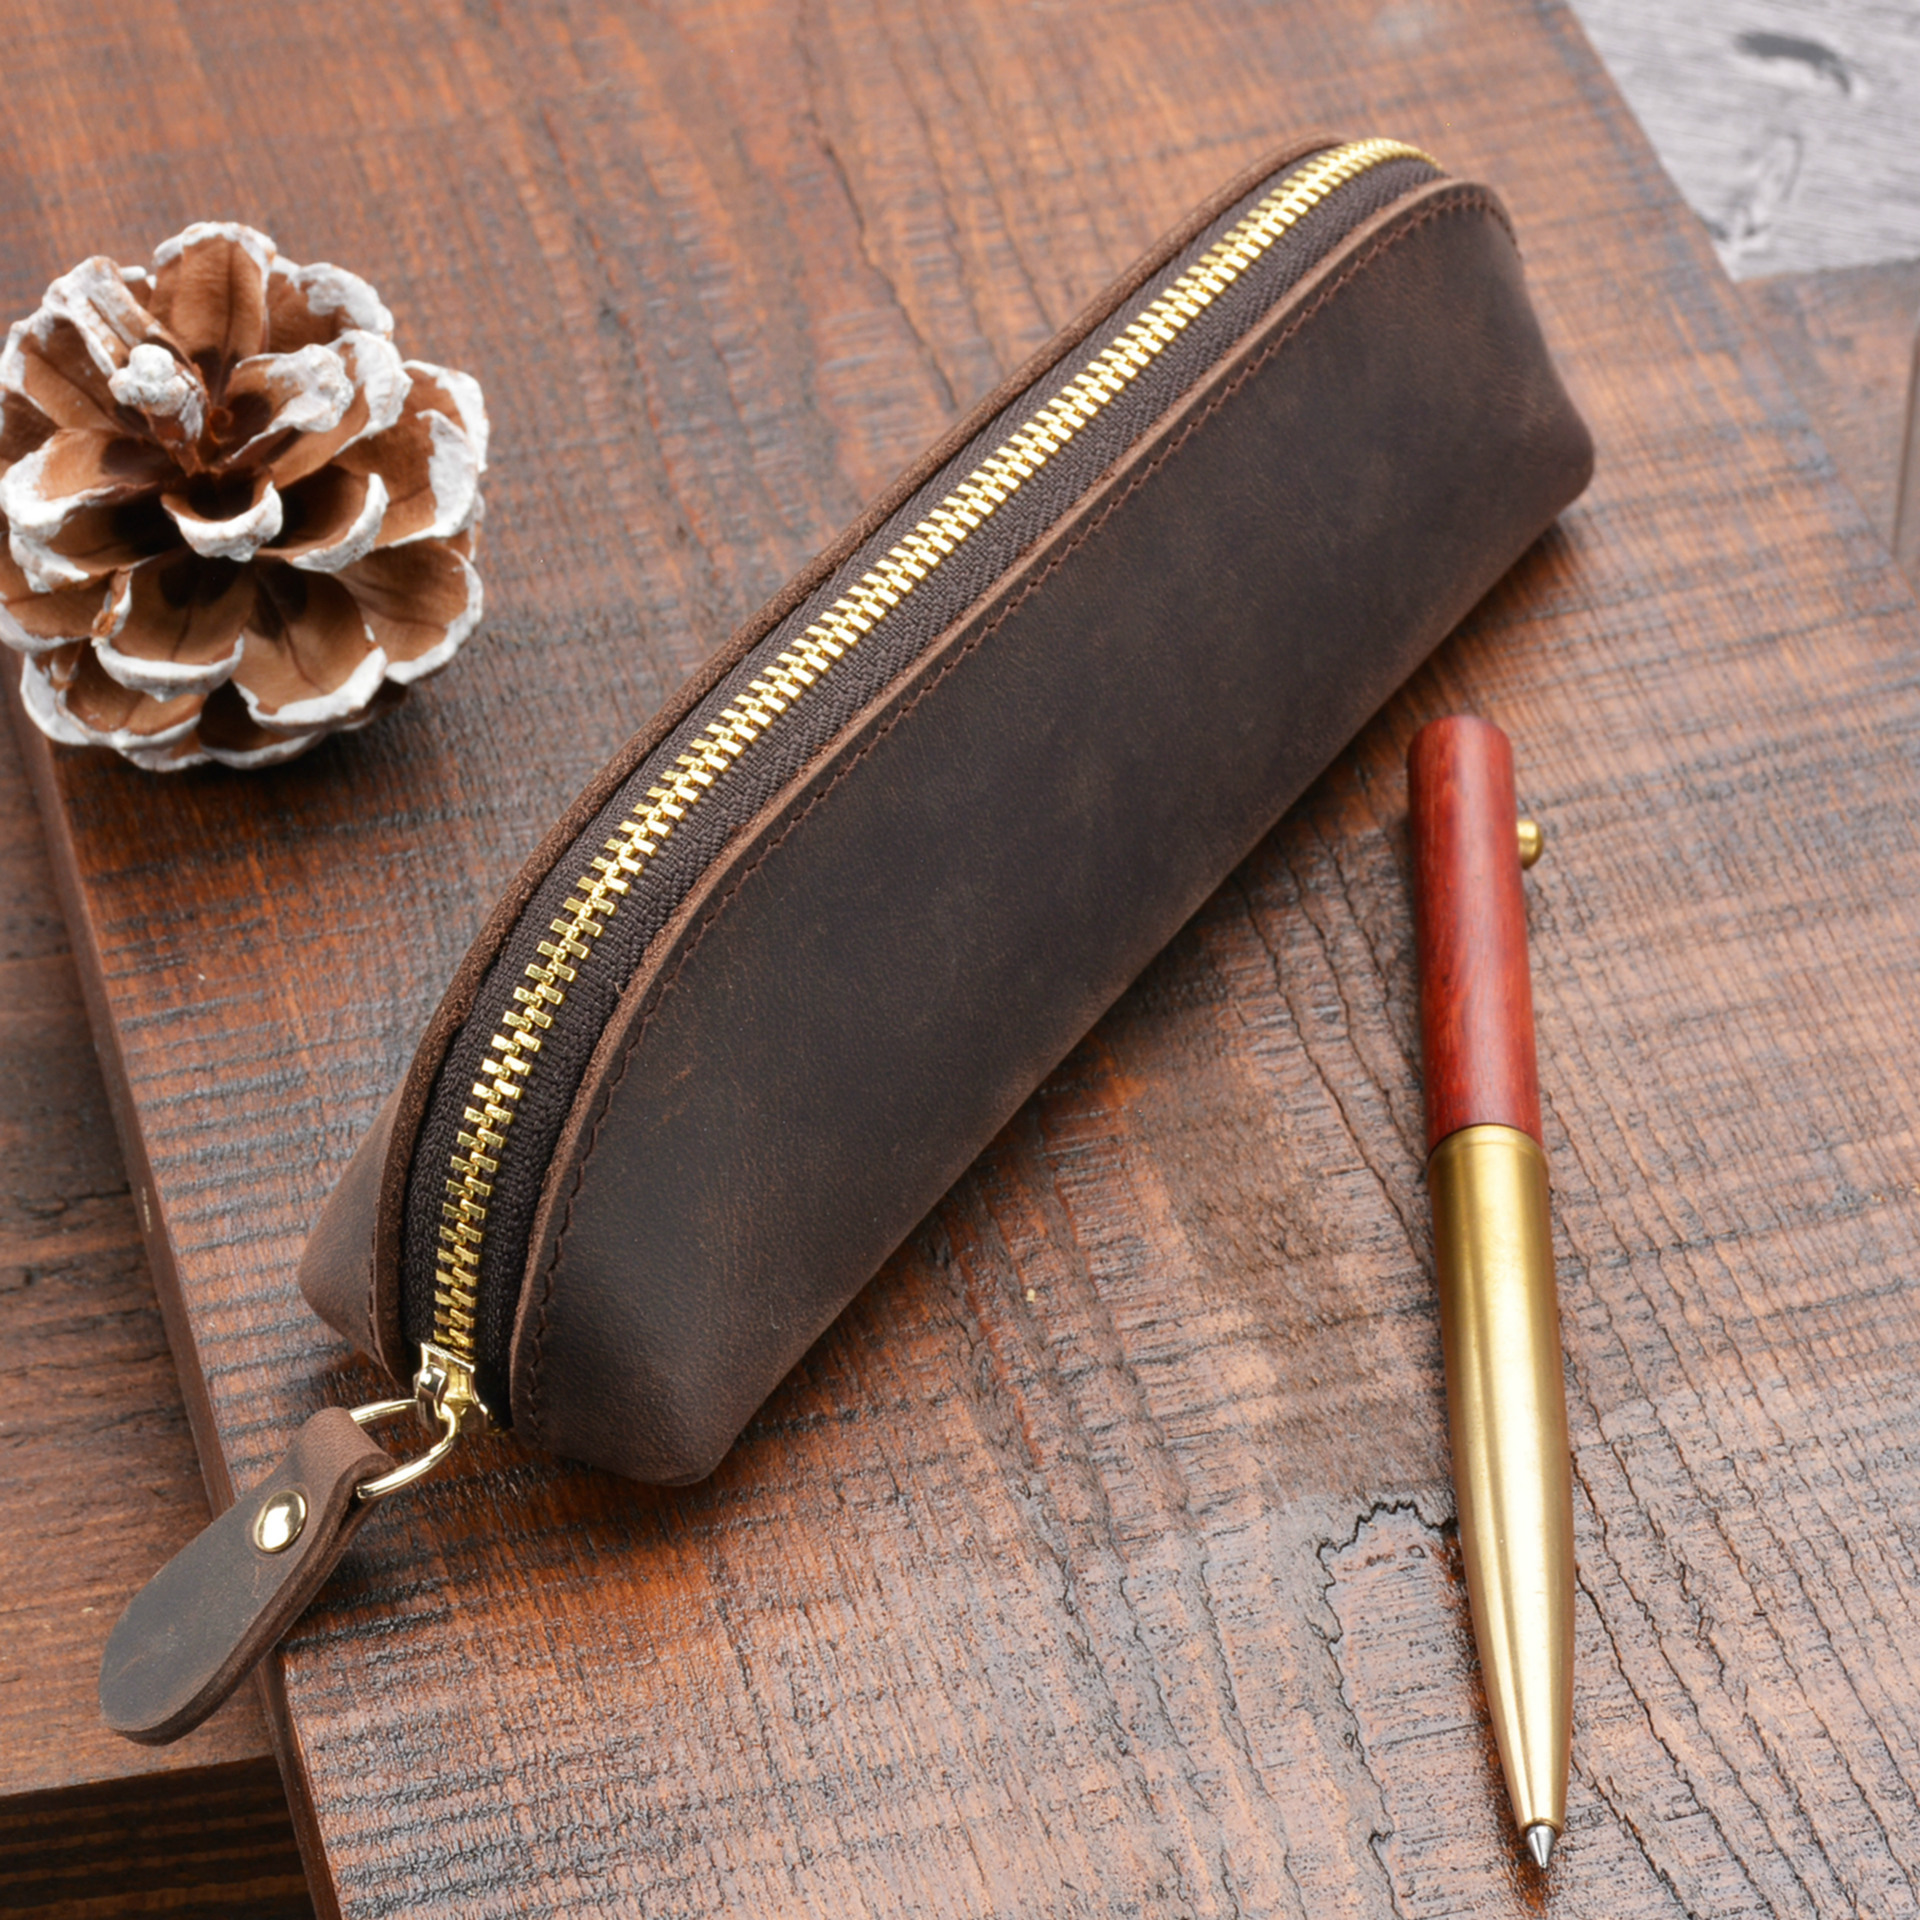 Cowhide Pencil Bag, Zipper New Leather Pen Pouch Office School High Quality Stationery Pencil Cases, Birthday GiftCowhide Pencil Bag, Zipper New Leather Pen Pouch Office School High Quality Stationery Pencil Cases, Birthday Gift